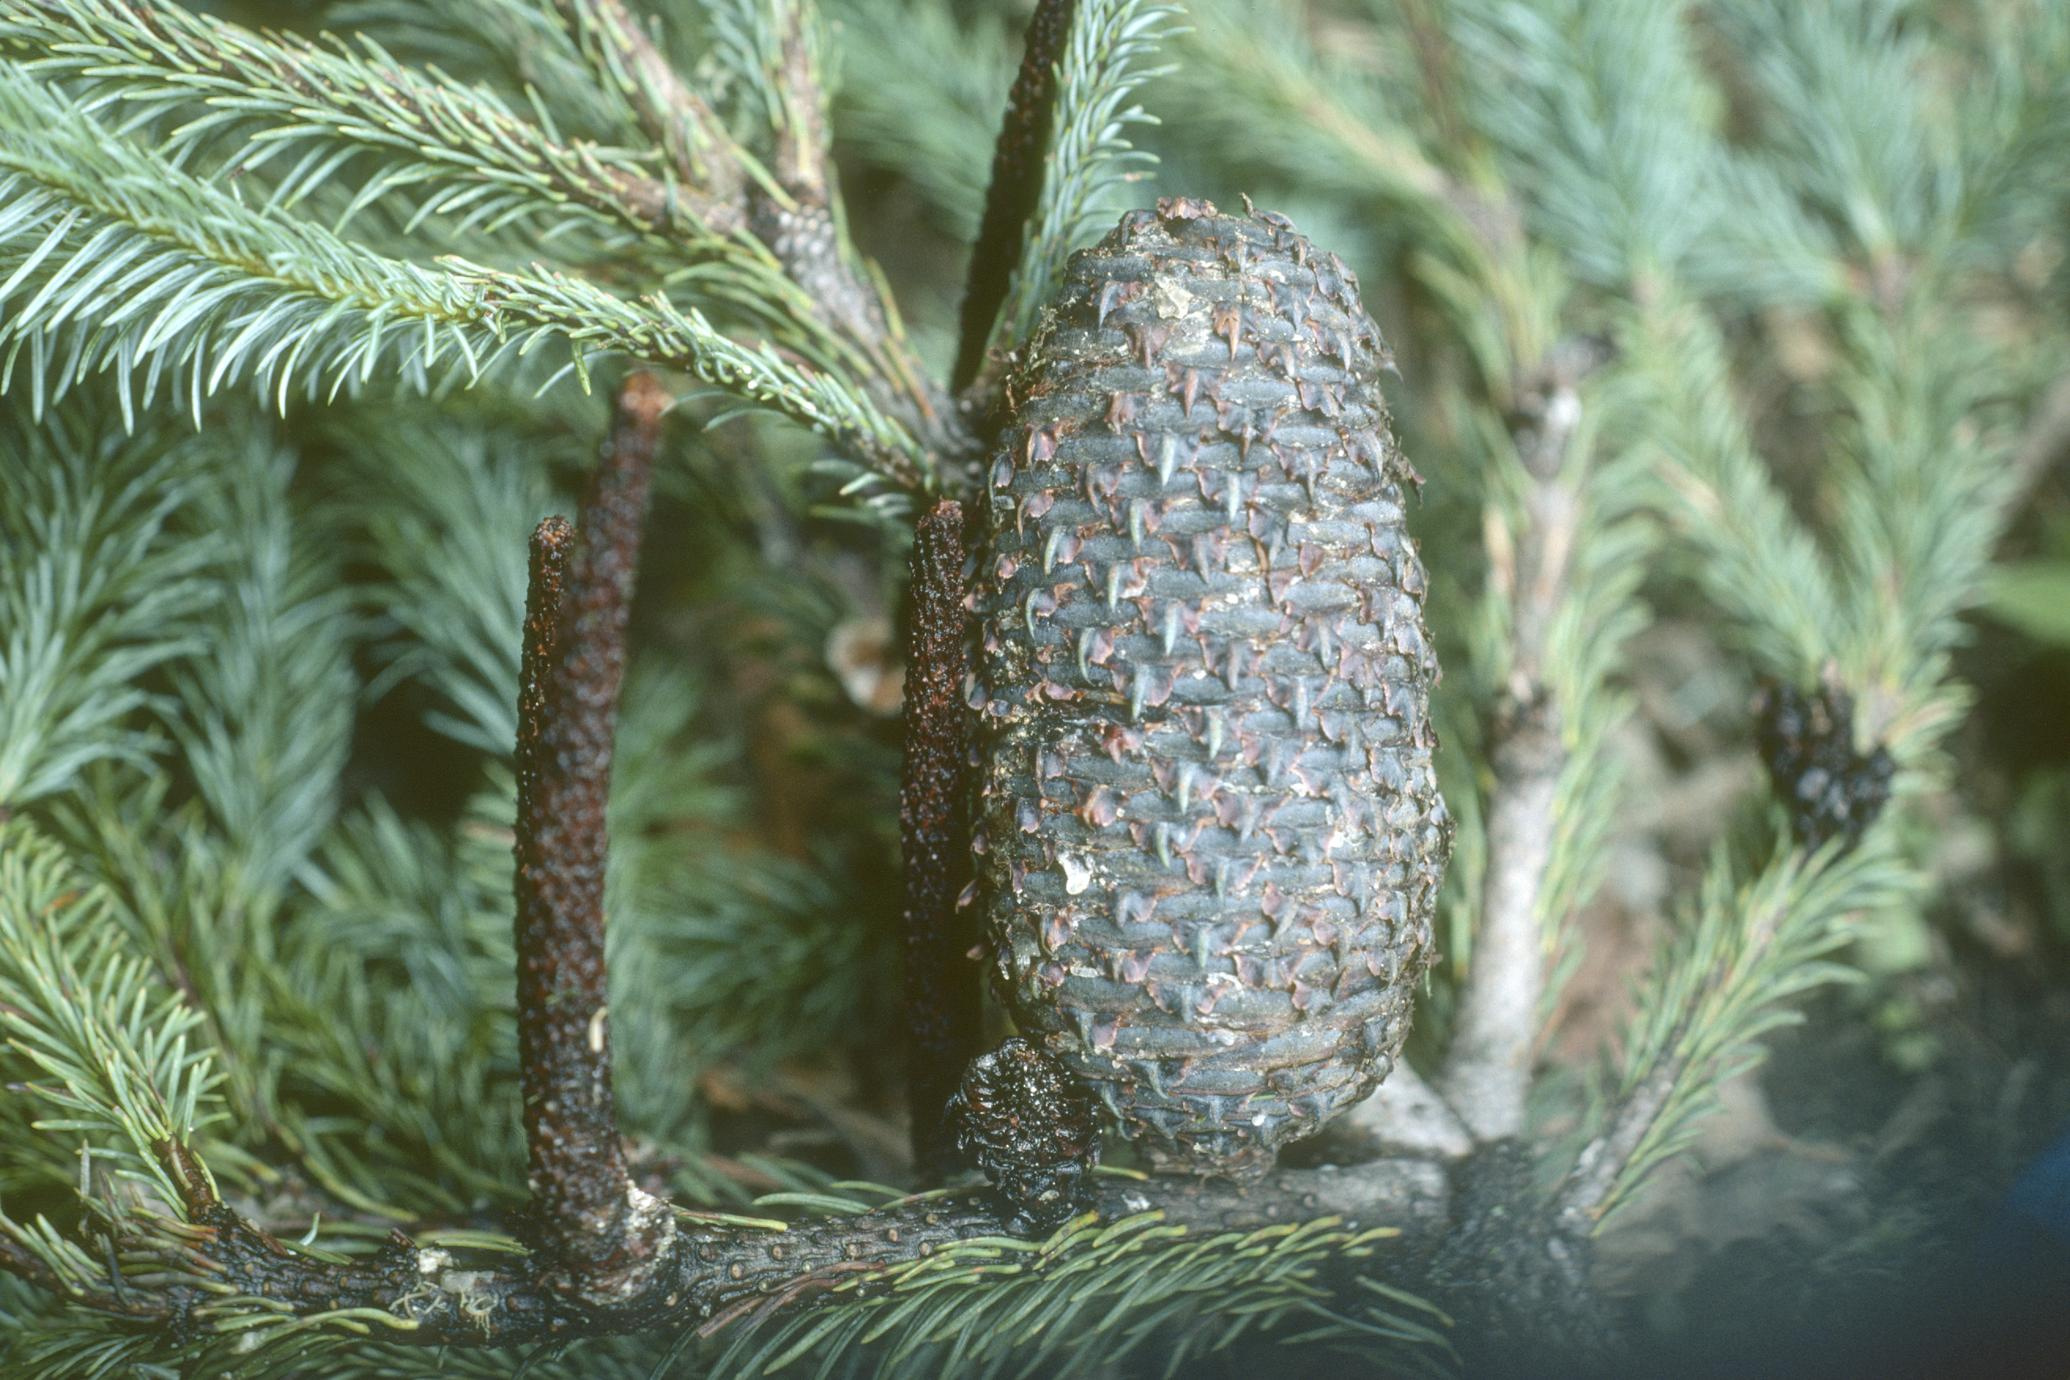 Abies Religiosa Cone In Cloud Forest Uwdc Uw Madison Libraries